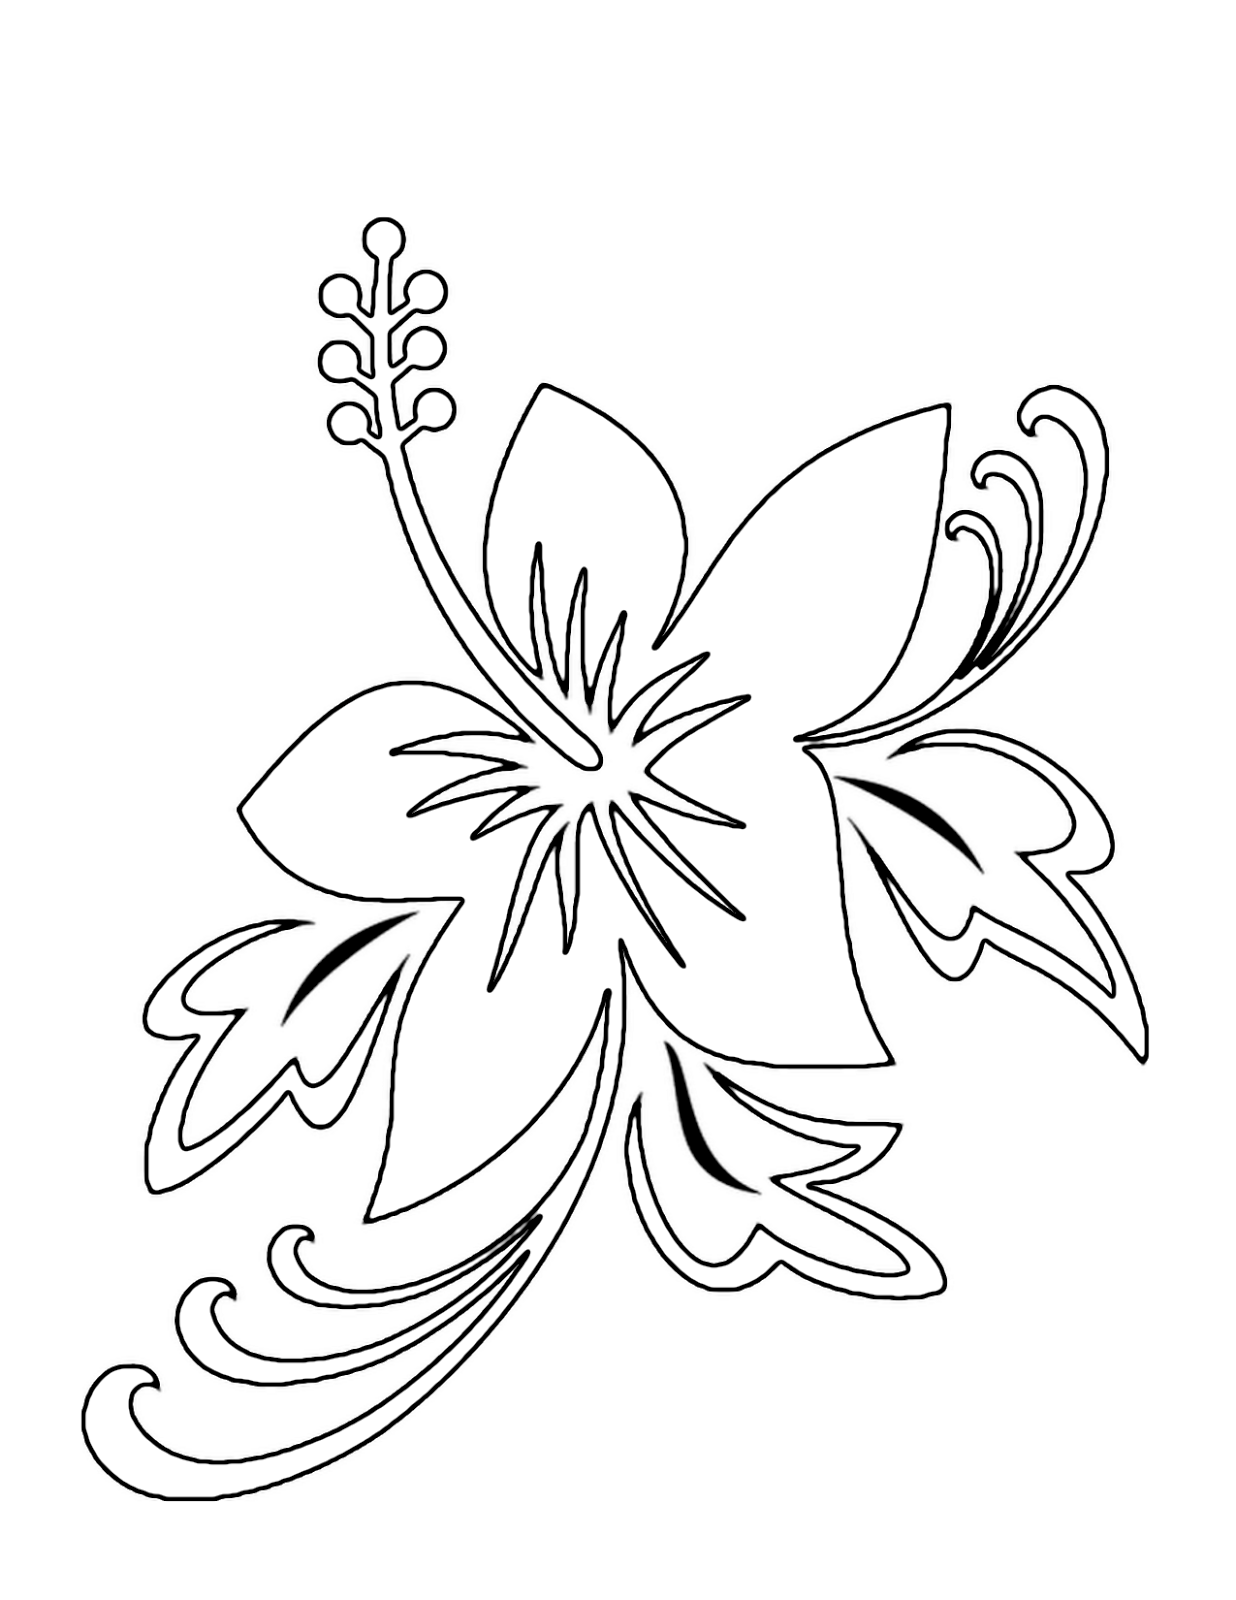 Free flower coloring pages from theKidzpage -- Printable - flower coloring pages free printable